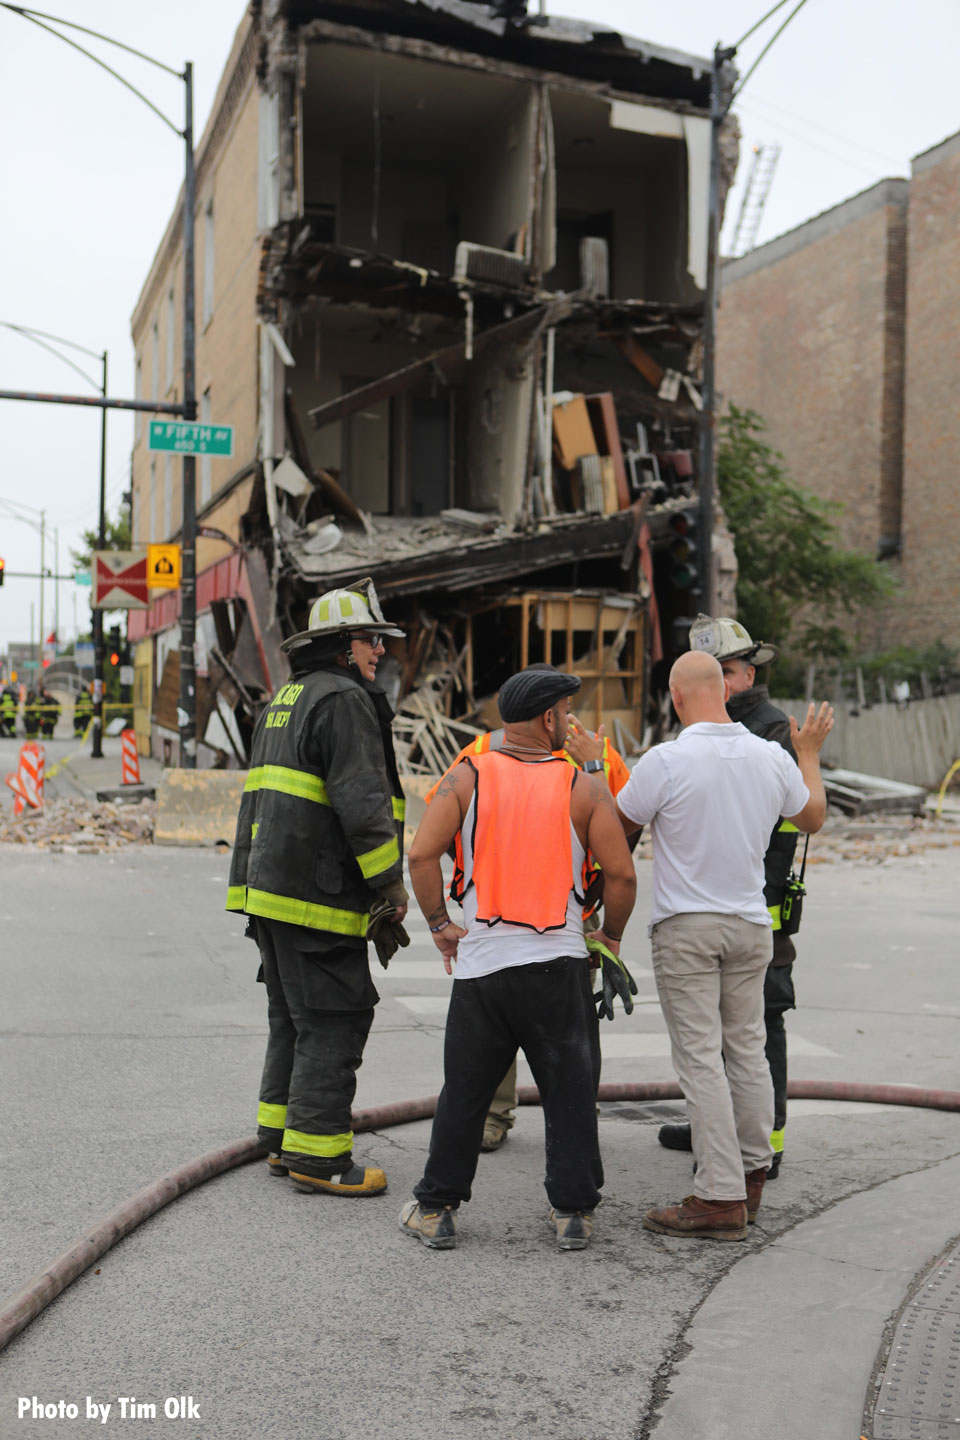 Chicago Fire Department members and others at the scene of the collapse.